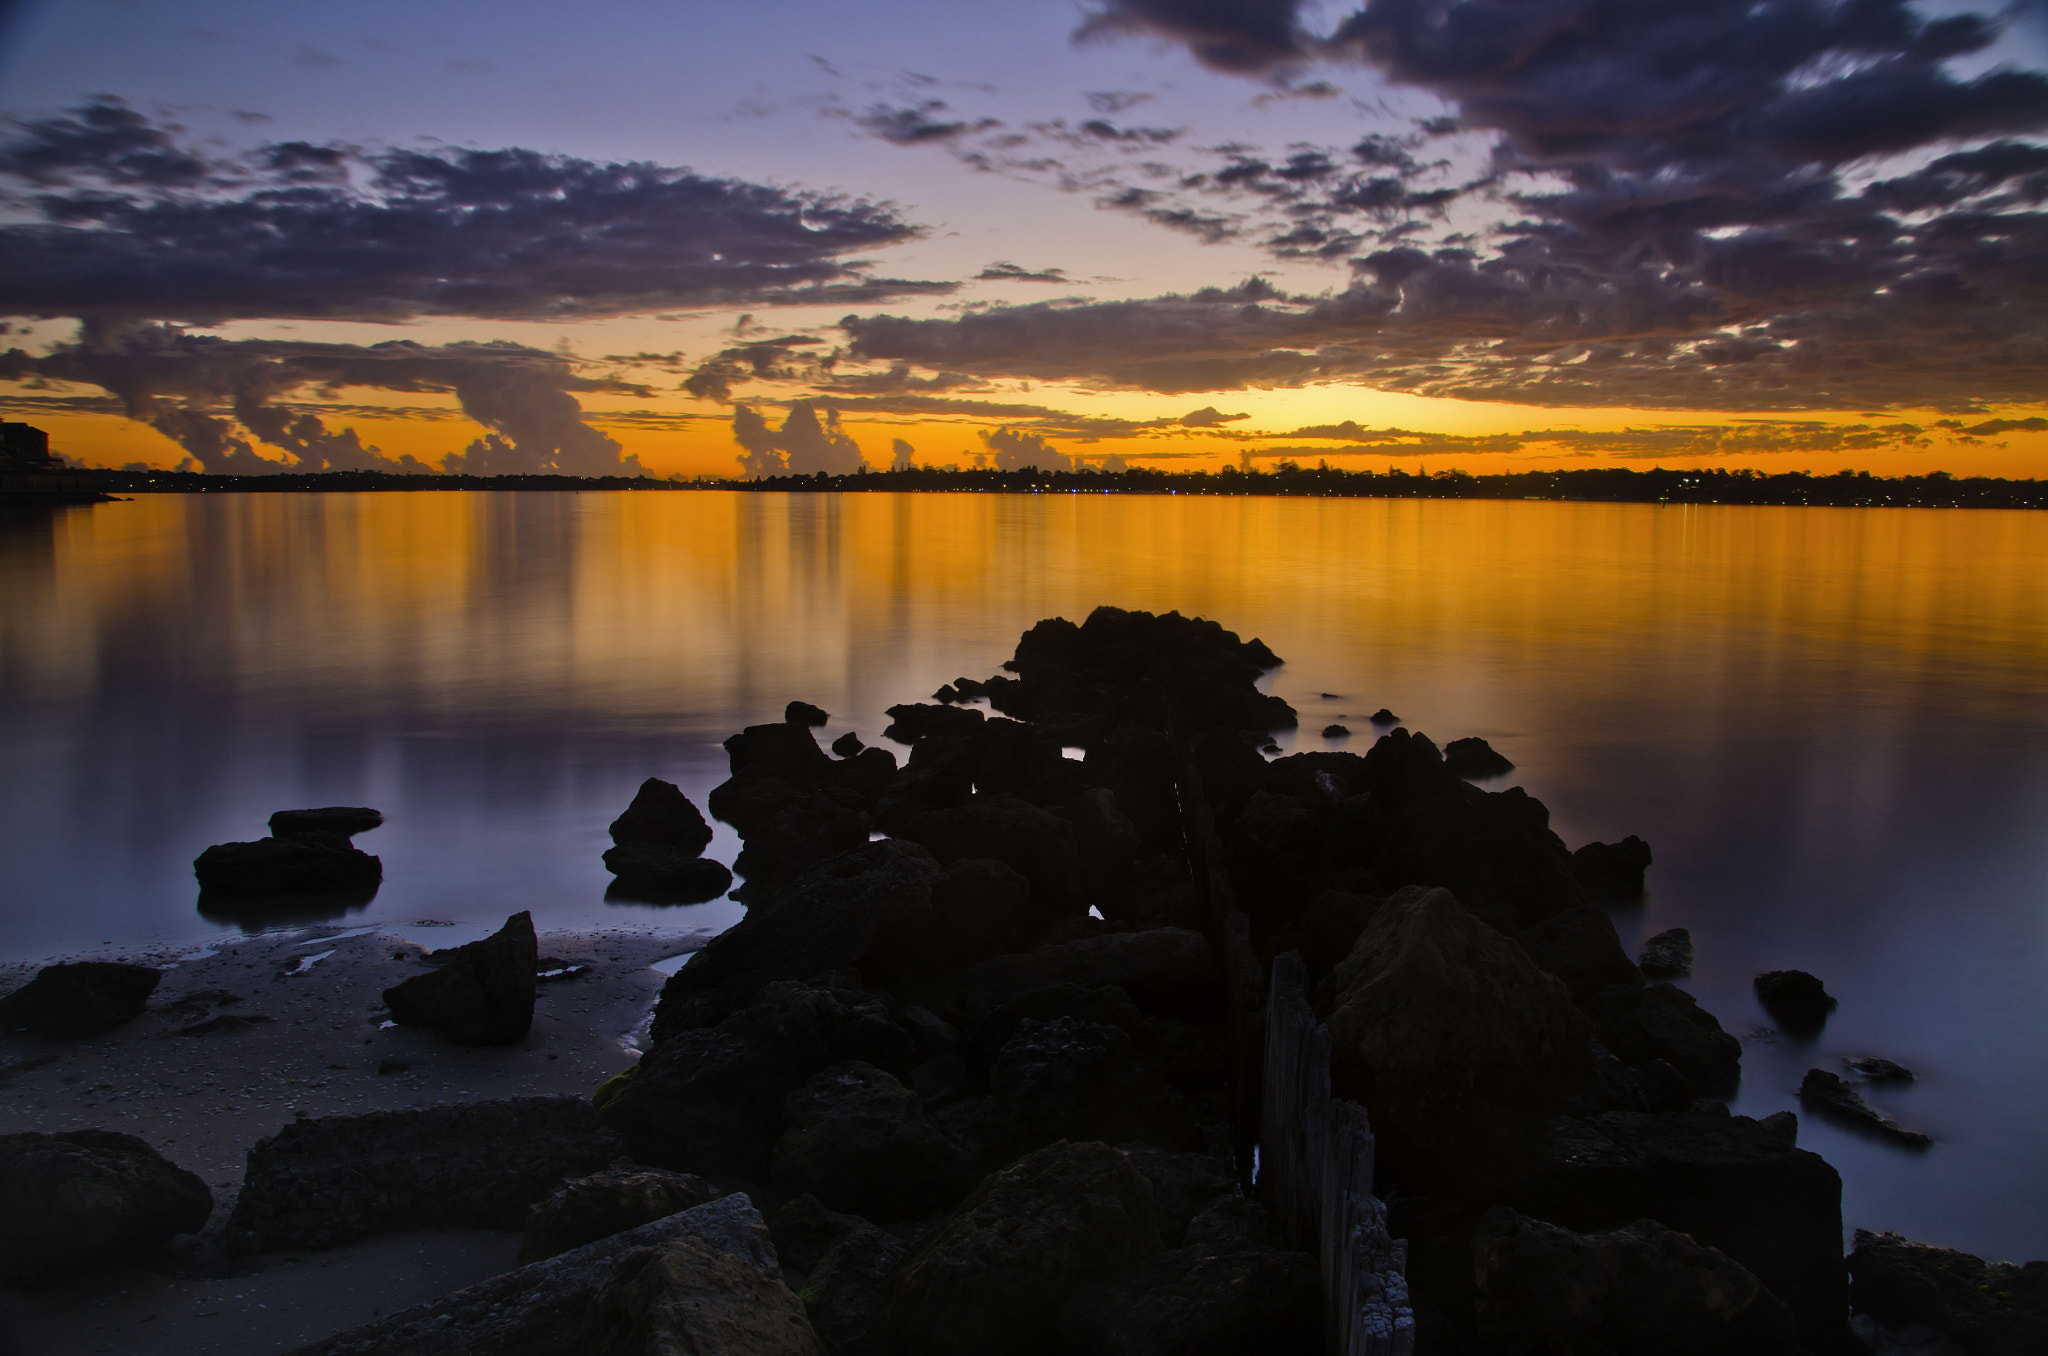 Photograph Magic in Matilda Bay by Clifford Mapepa on 500px